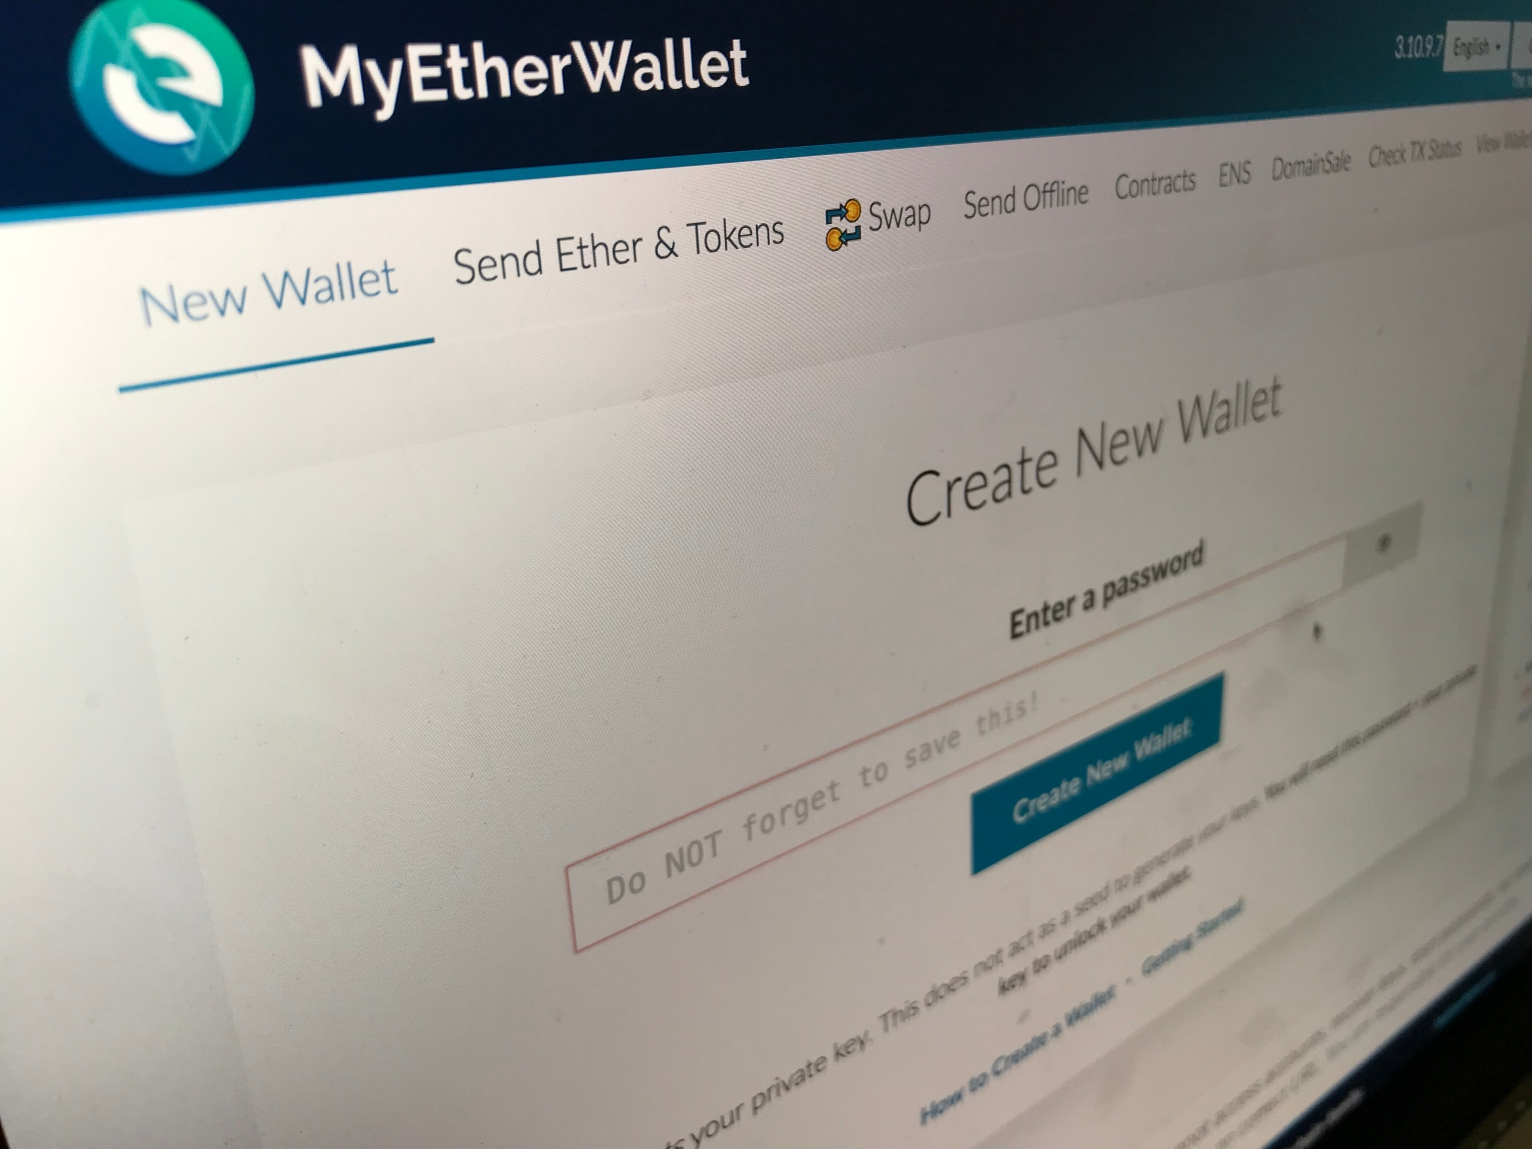 Popular crypto service MyEtherWallet hit by attack after Hola VPN